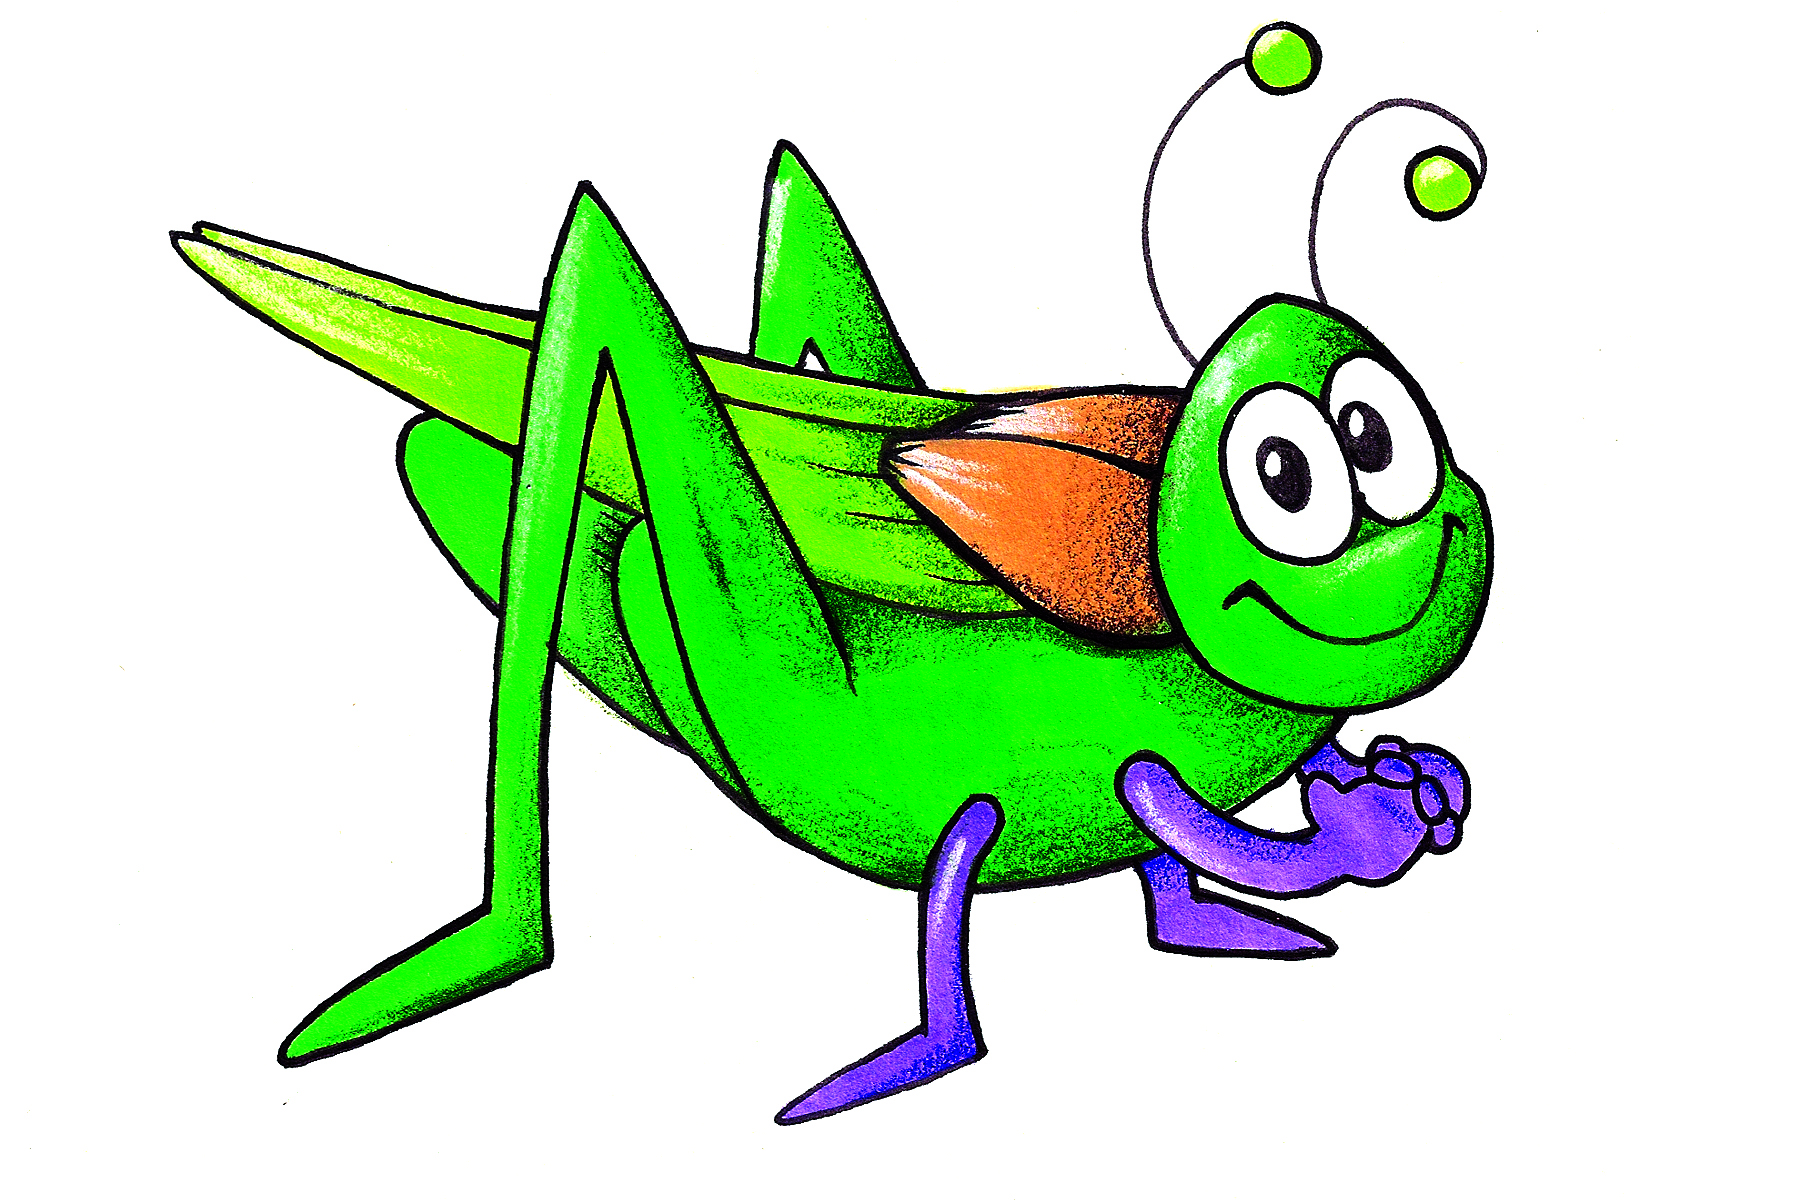 Cricket bug clipart svg library download Cricket bug clipart - Cliparting.com svg library download